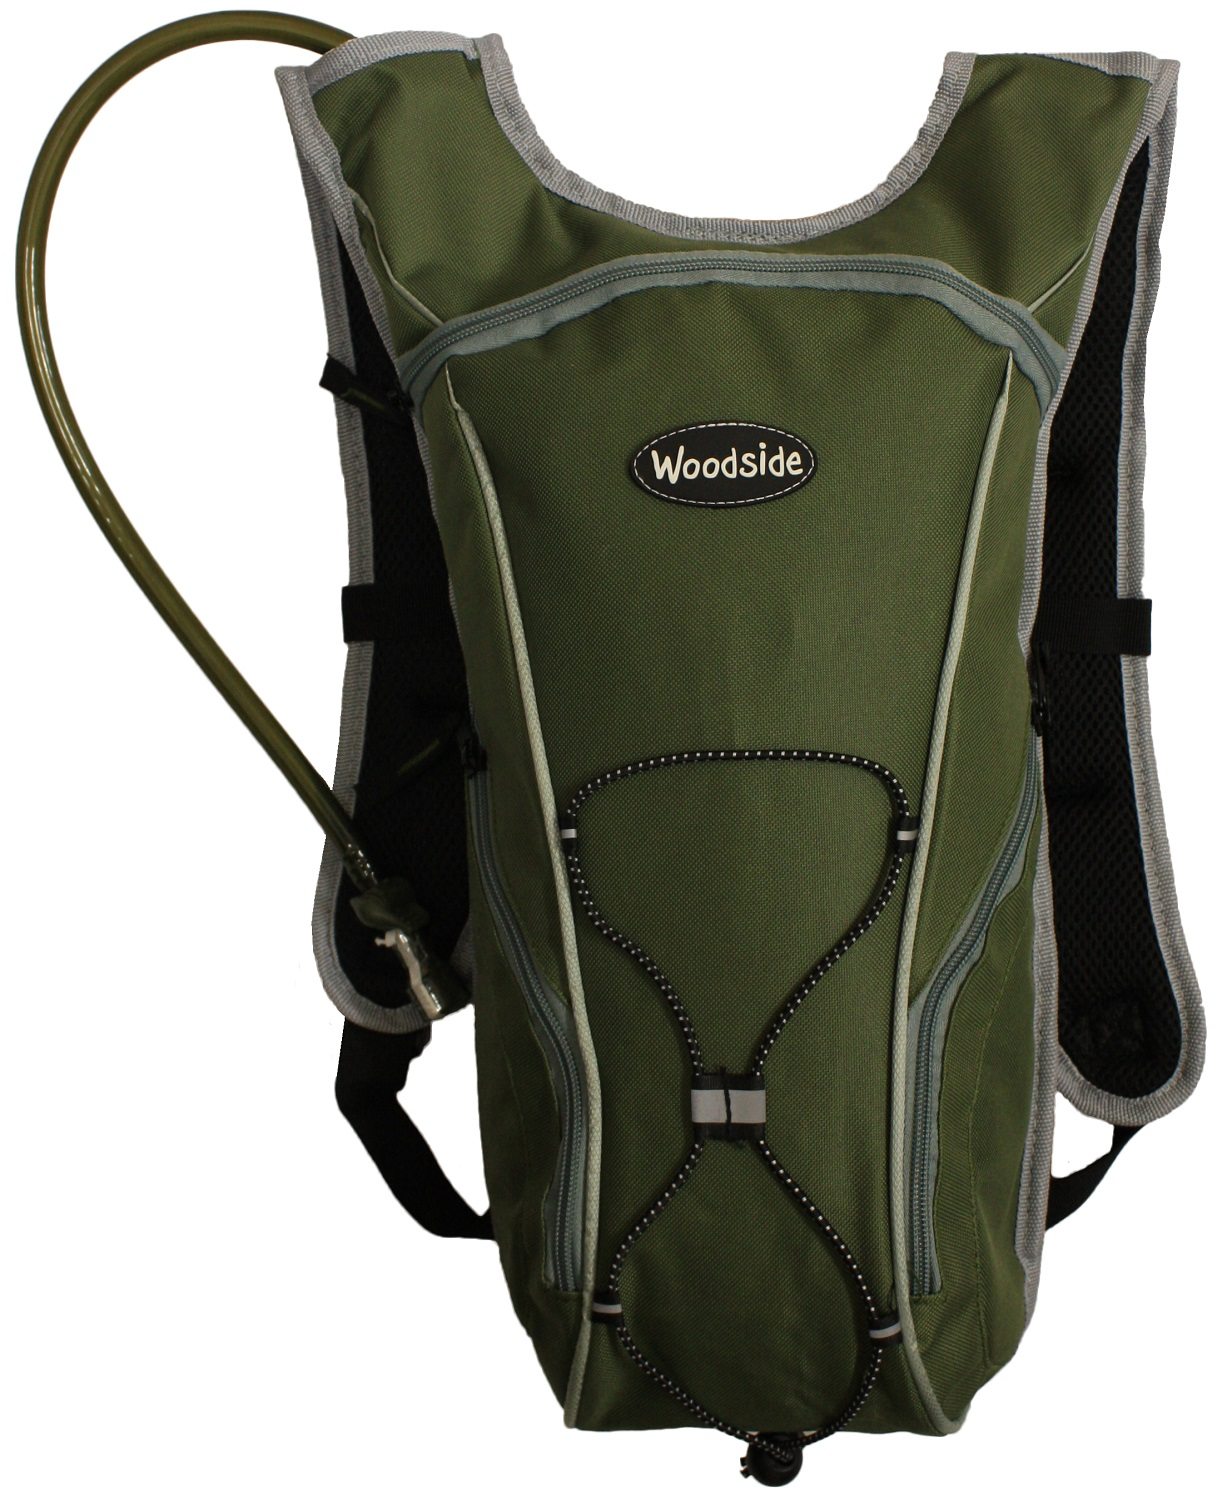 WOODSIDE 2 LITRE HYDRATION PACK WATER RUCKSACK/BACKPACK CYCLING BLADDER BAG NEW